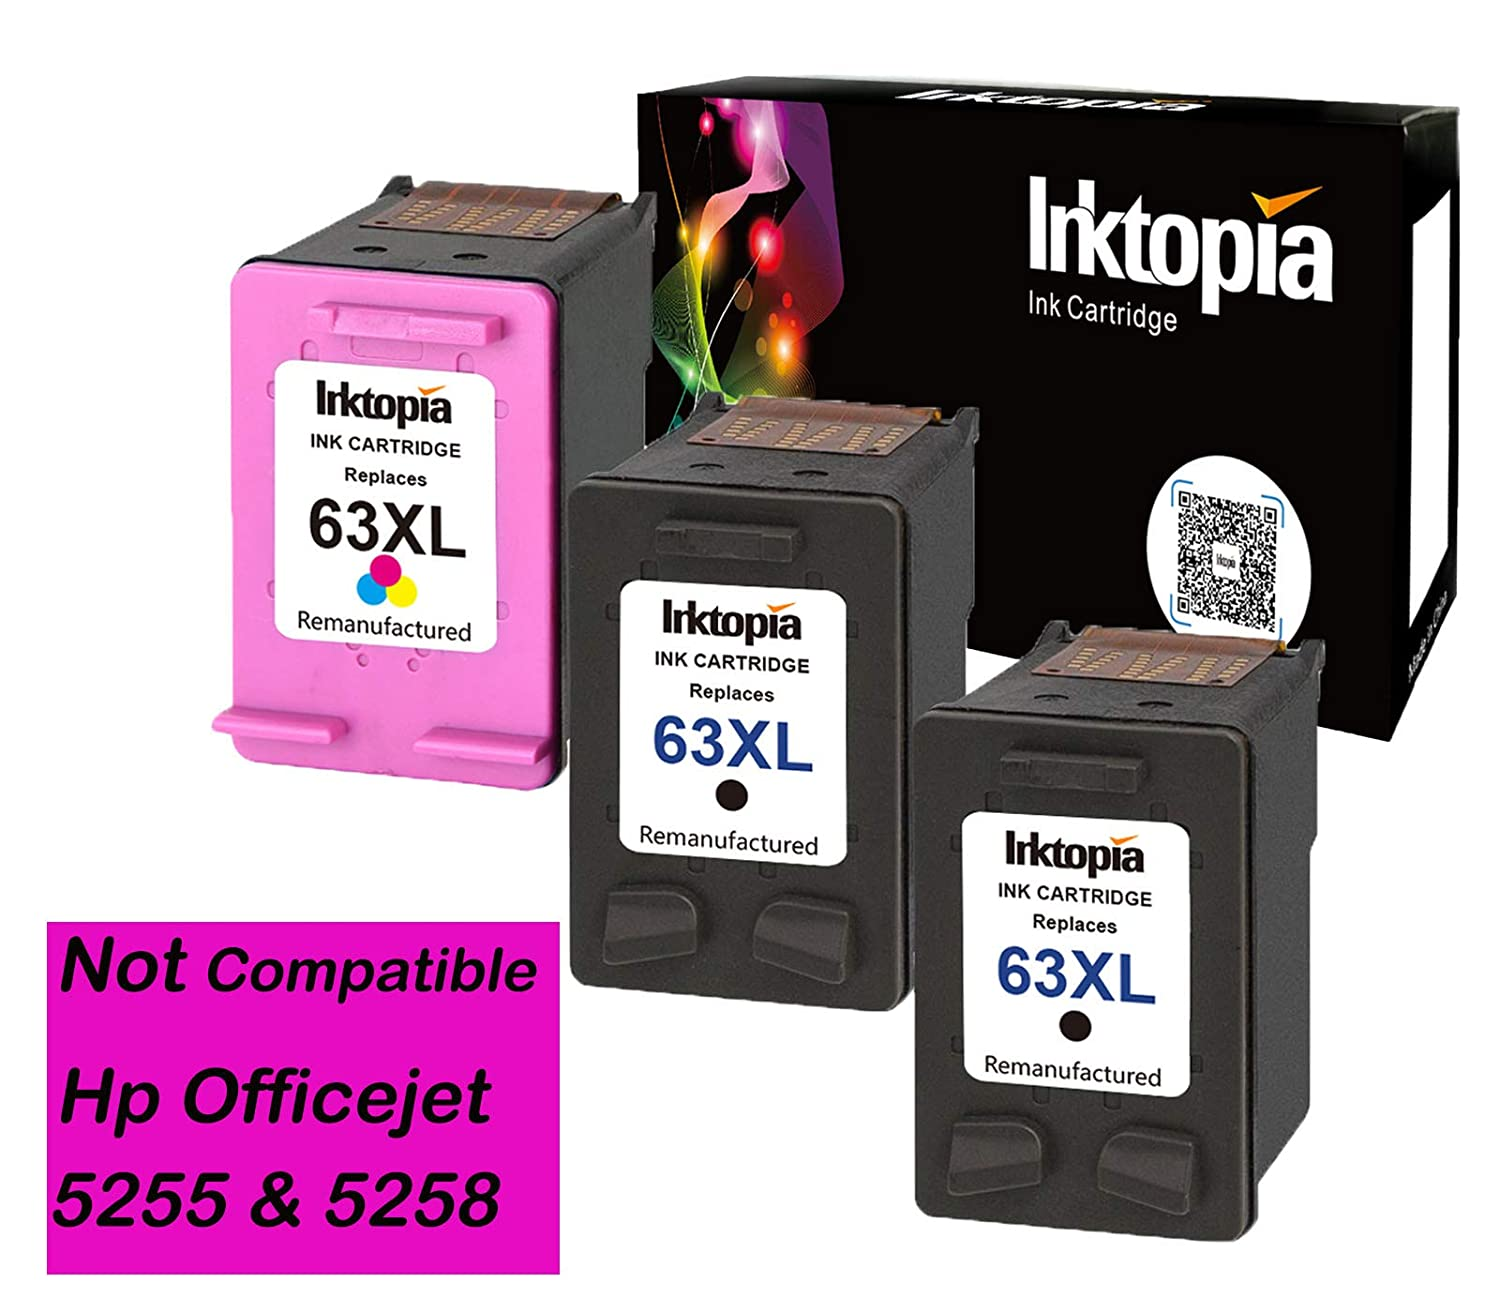 Remanufactured Ink Cartridge for HP 63XL High Yield, 1 Black 1 Tri-color, Ink Level Display Used in HP Envy 4520 4516 HP Officejet 4650 3830 3831 4655 HP Deskjet 2130 1112 3630 3633 3634 Printer InkInk Topia